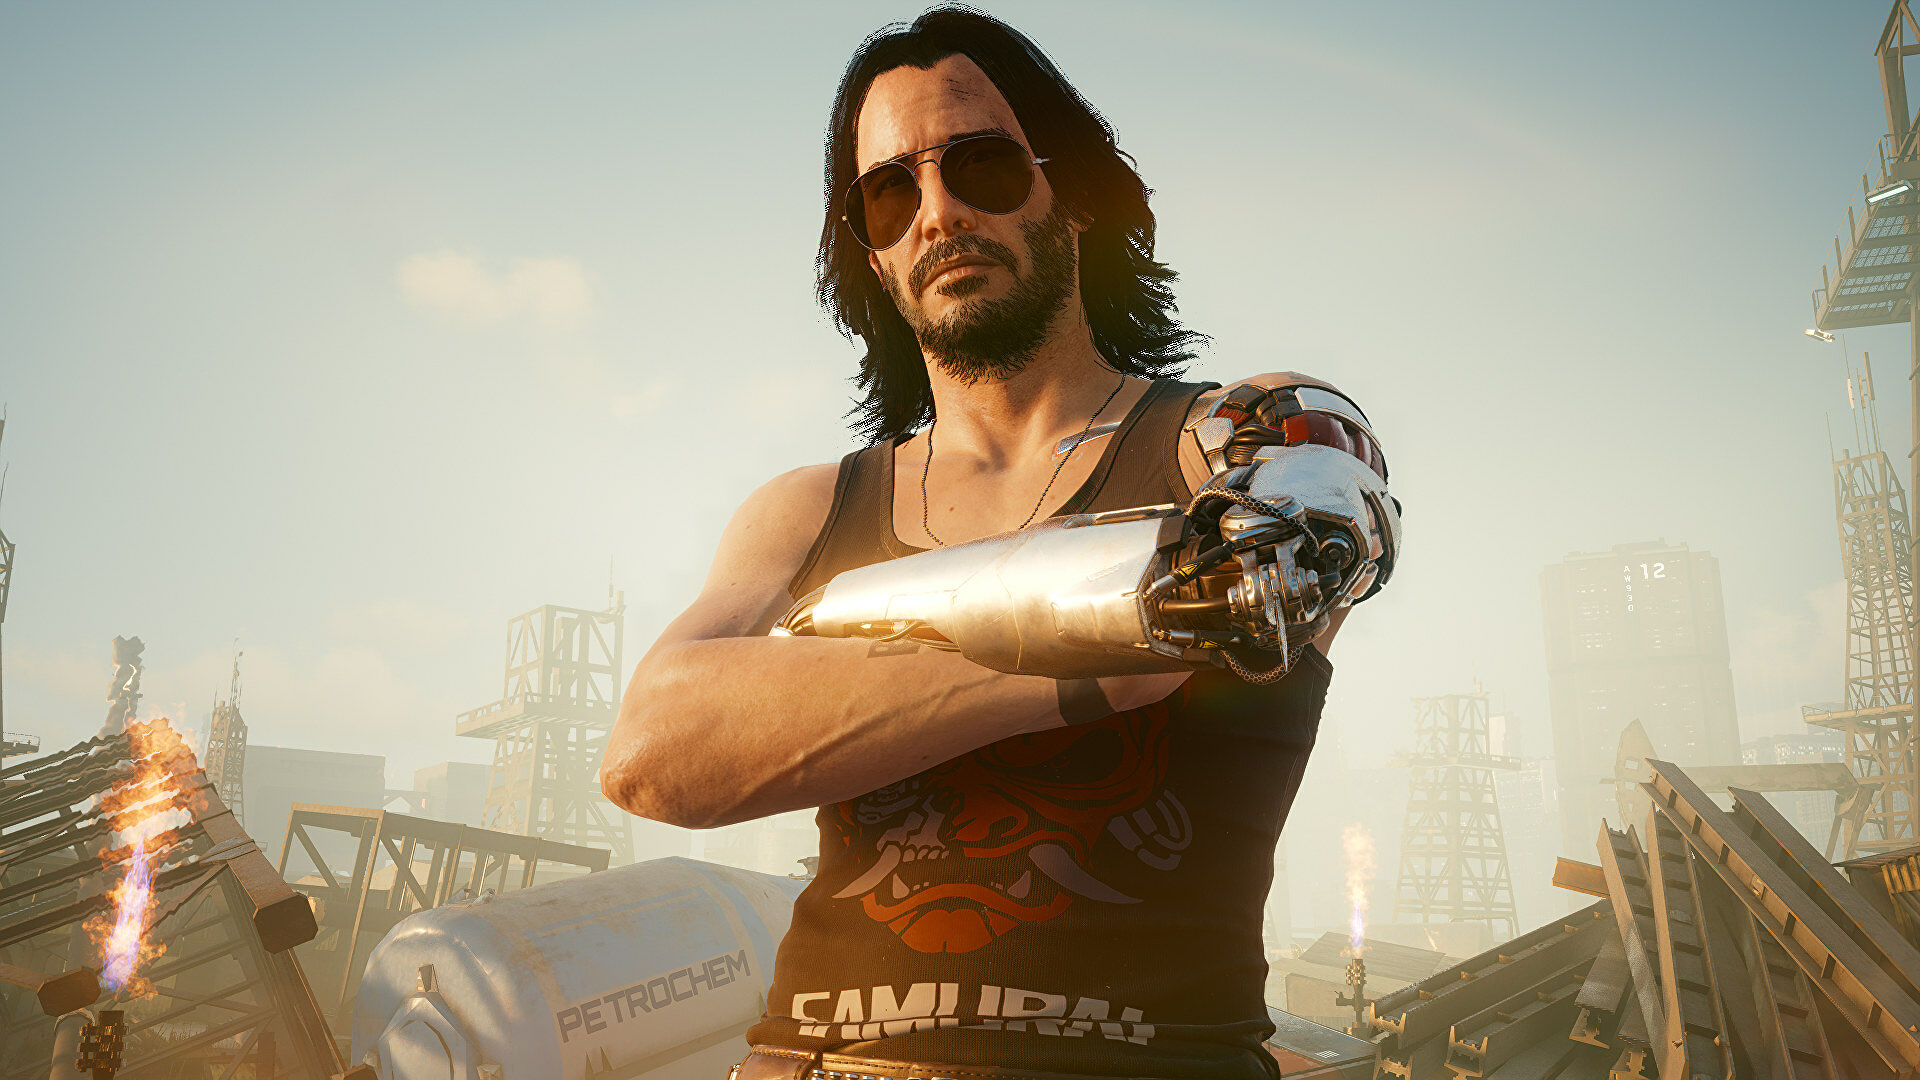 Cyberpunk 2077 v1.2 patch notes are huge and look good